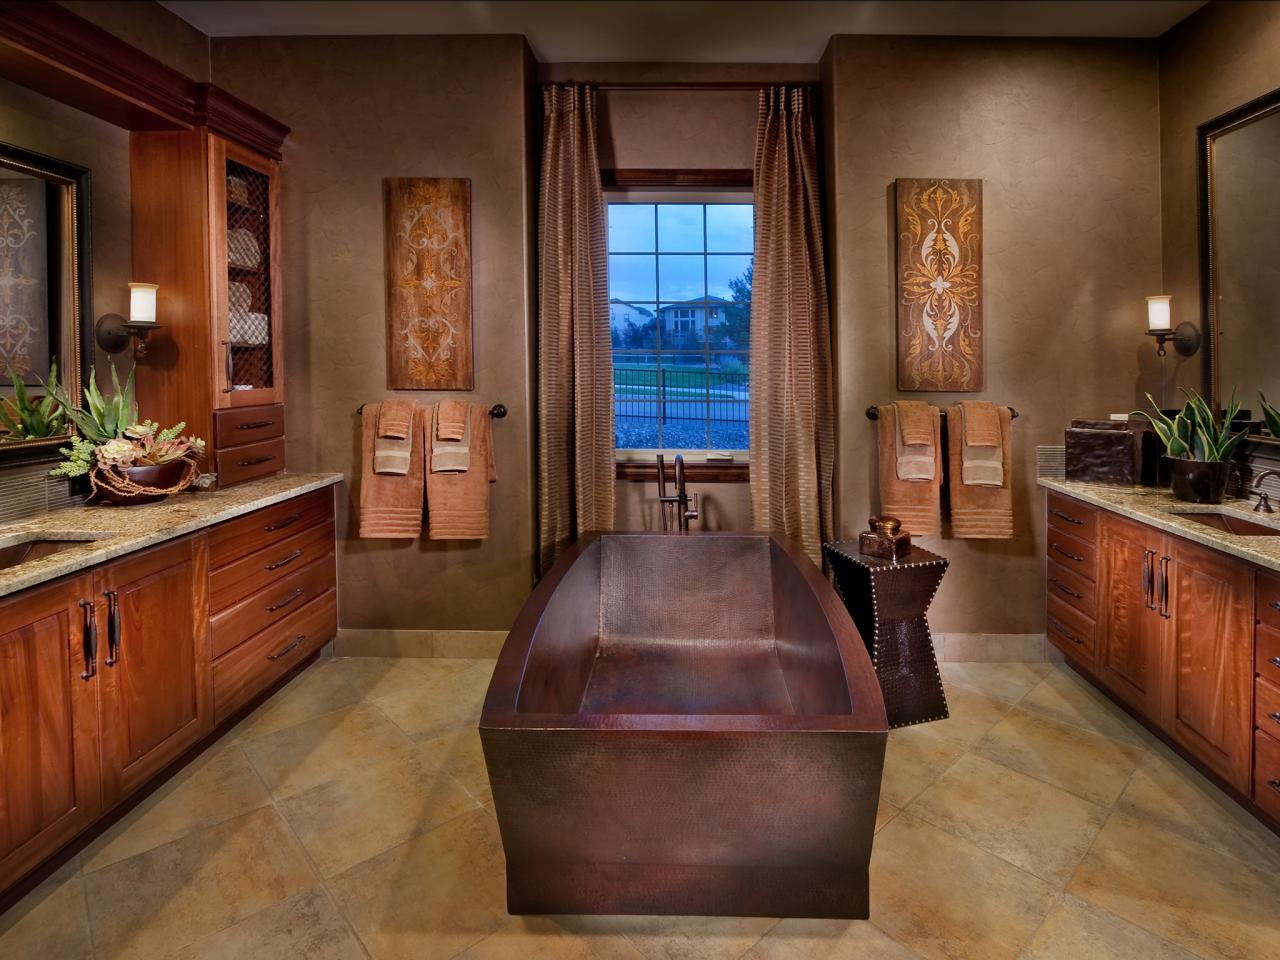 CI-Denver-Parade-of-Homes_Celebrity-14-Bathroom-Wide_s4x3.jpg.rend.hgtvcom.1280.960